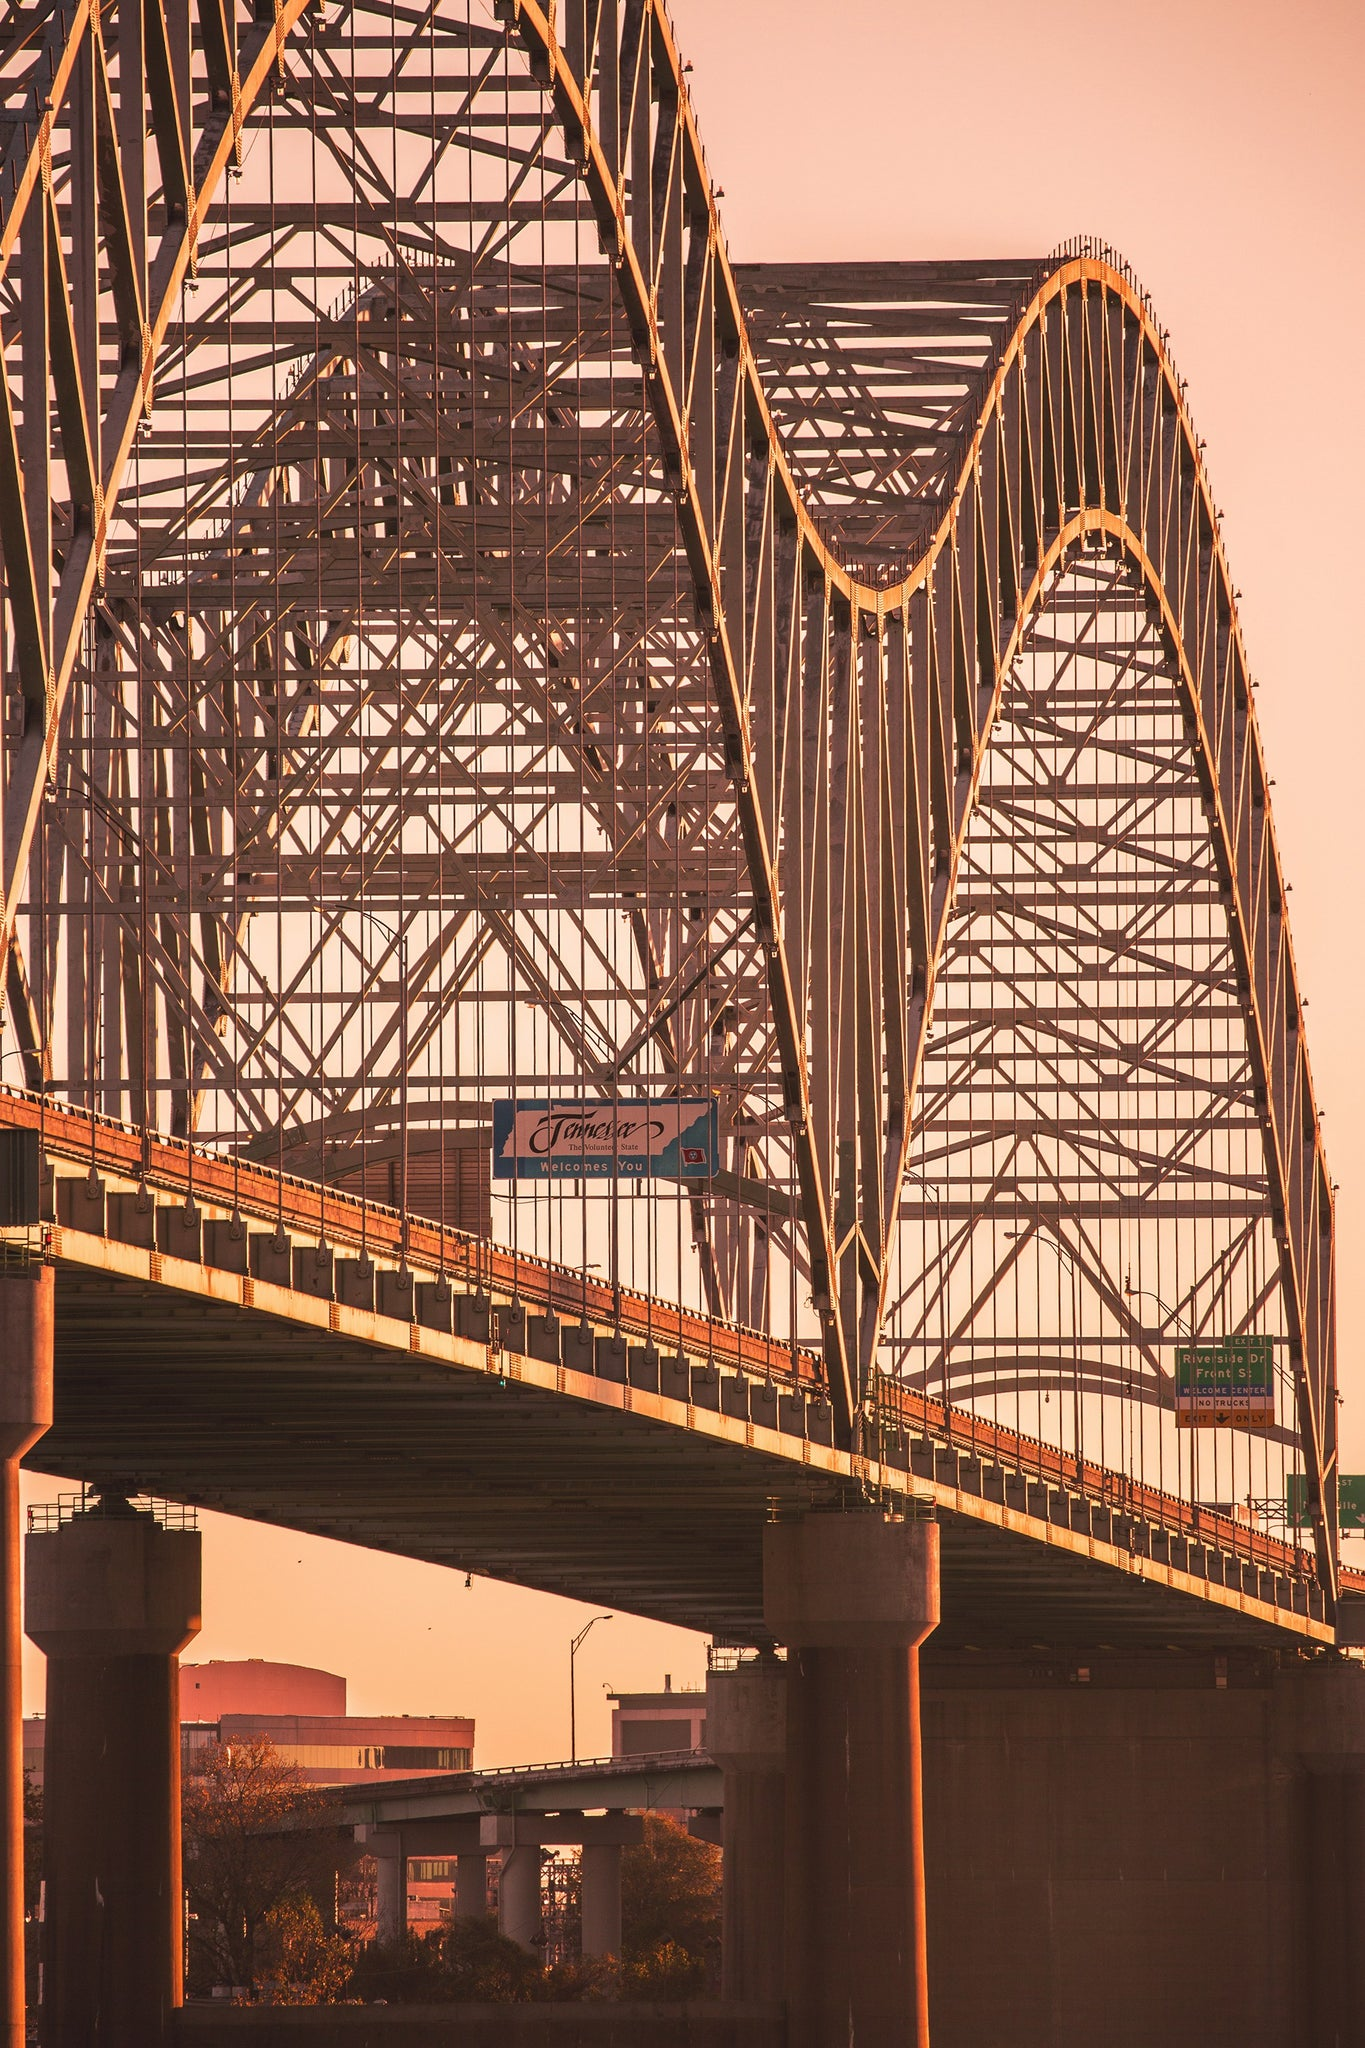 Memphis bridge close up photo from Arkansas Big River Trail using the Canon 100-400 lens